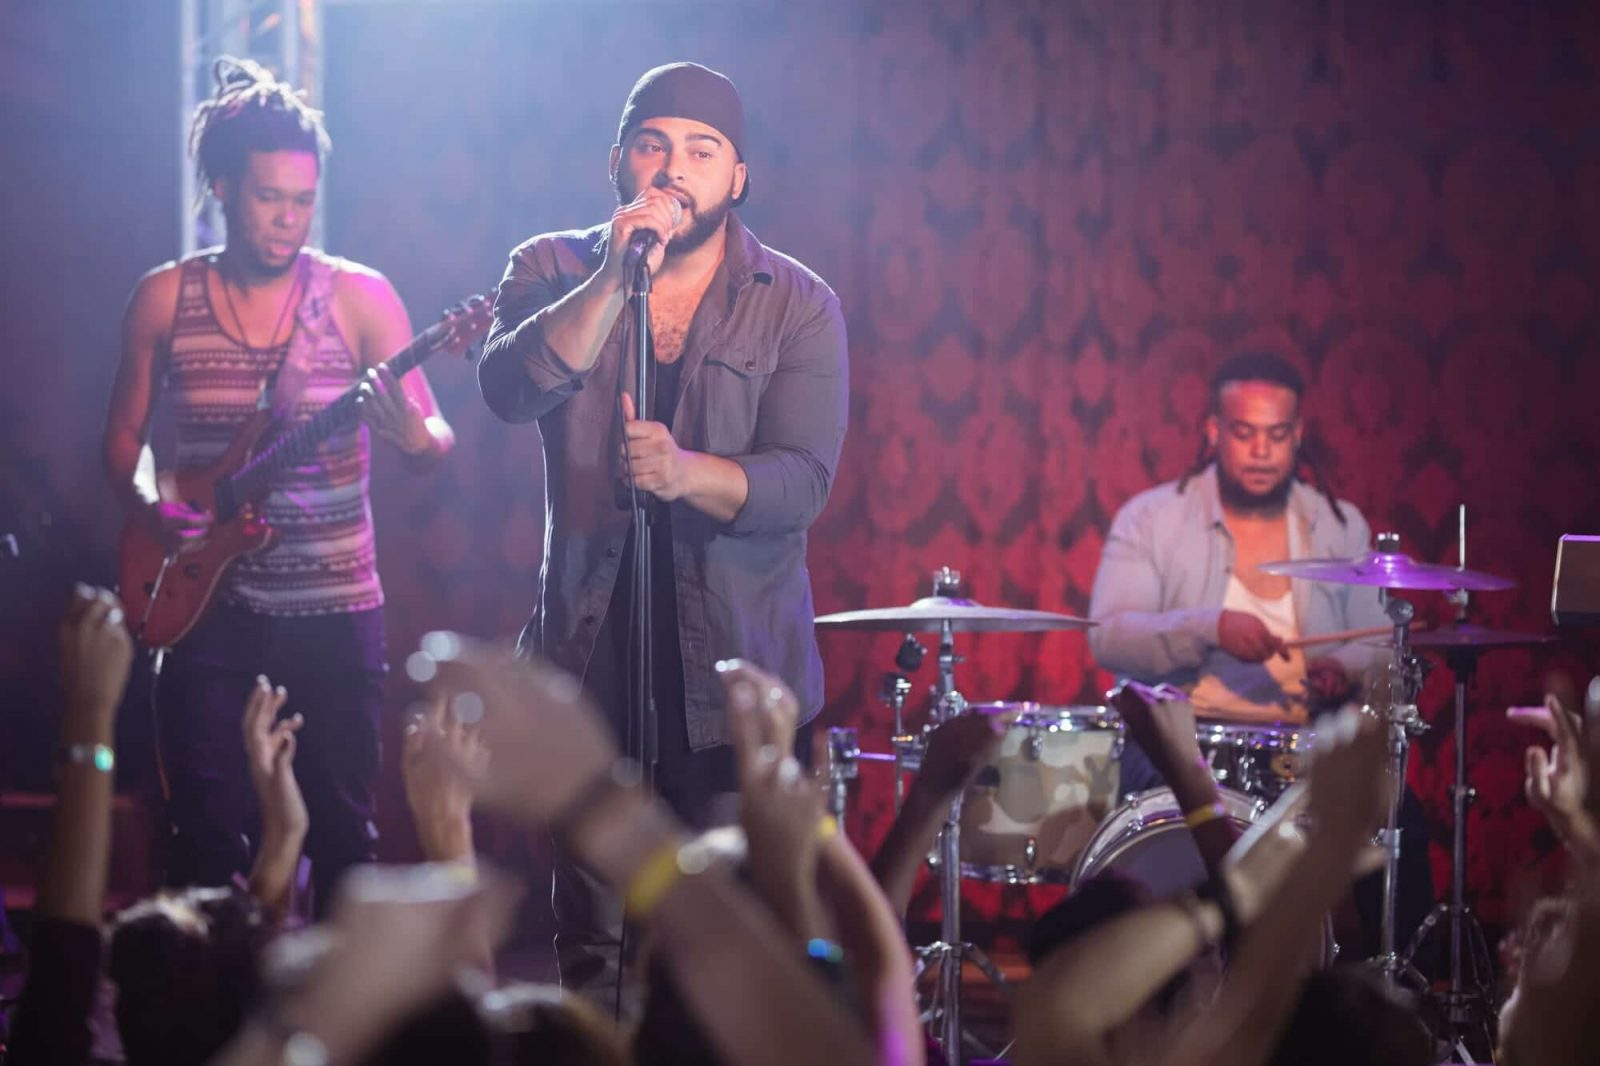 Male musicians performing at nightclub